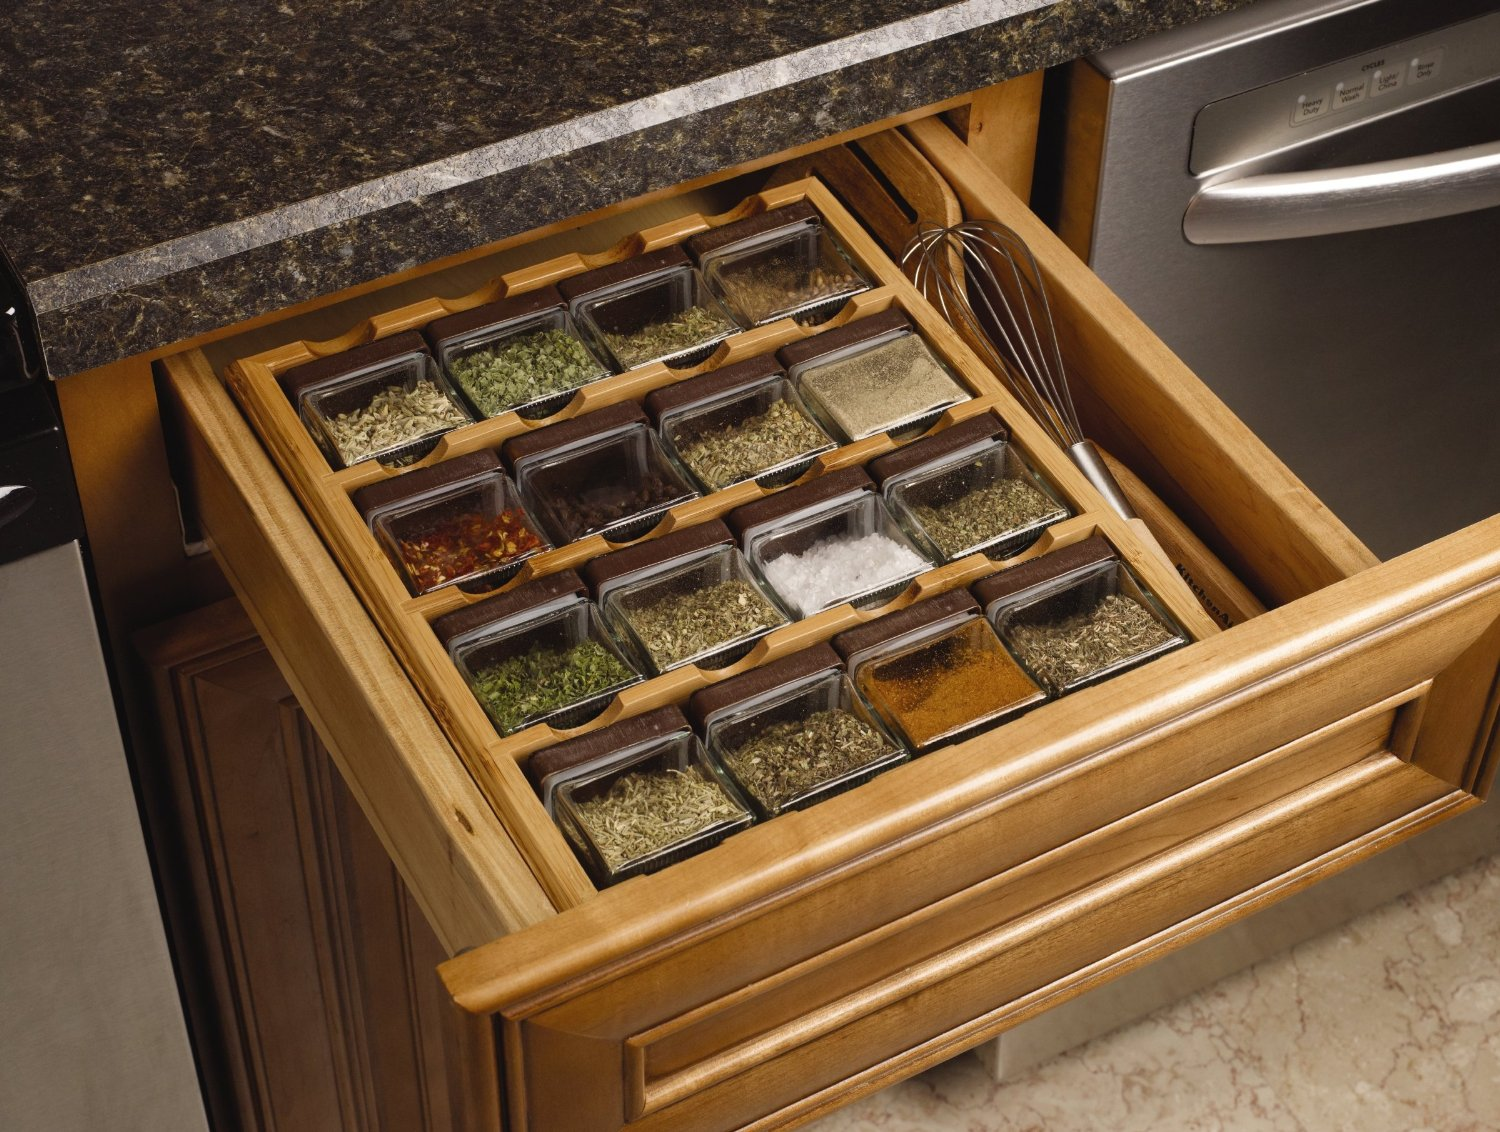 A 16-cube spice rack. A perfect for the kitchen counter's drawer.